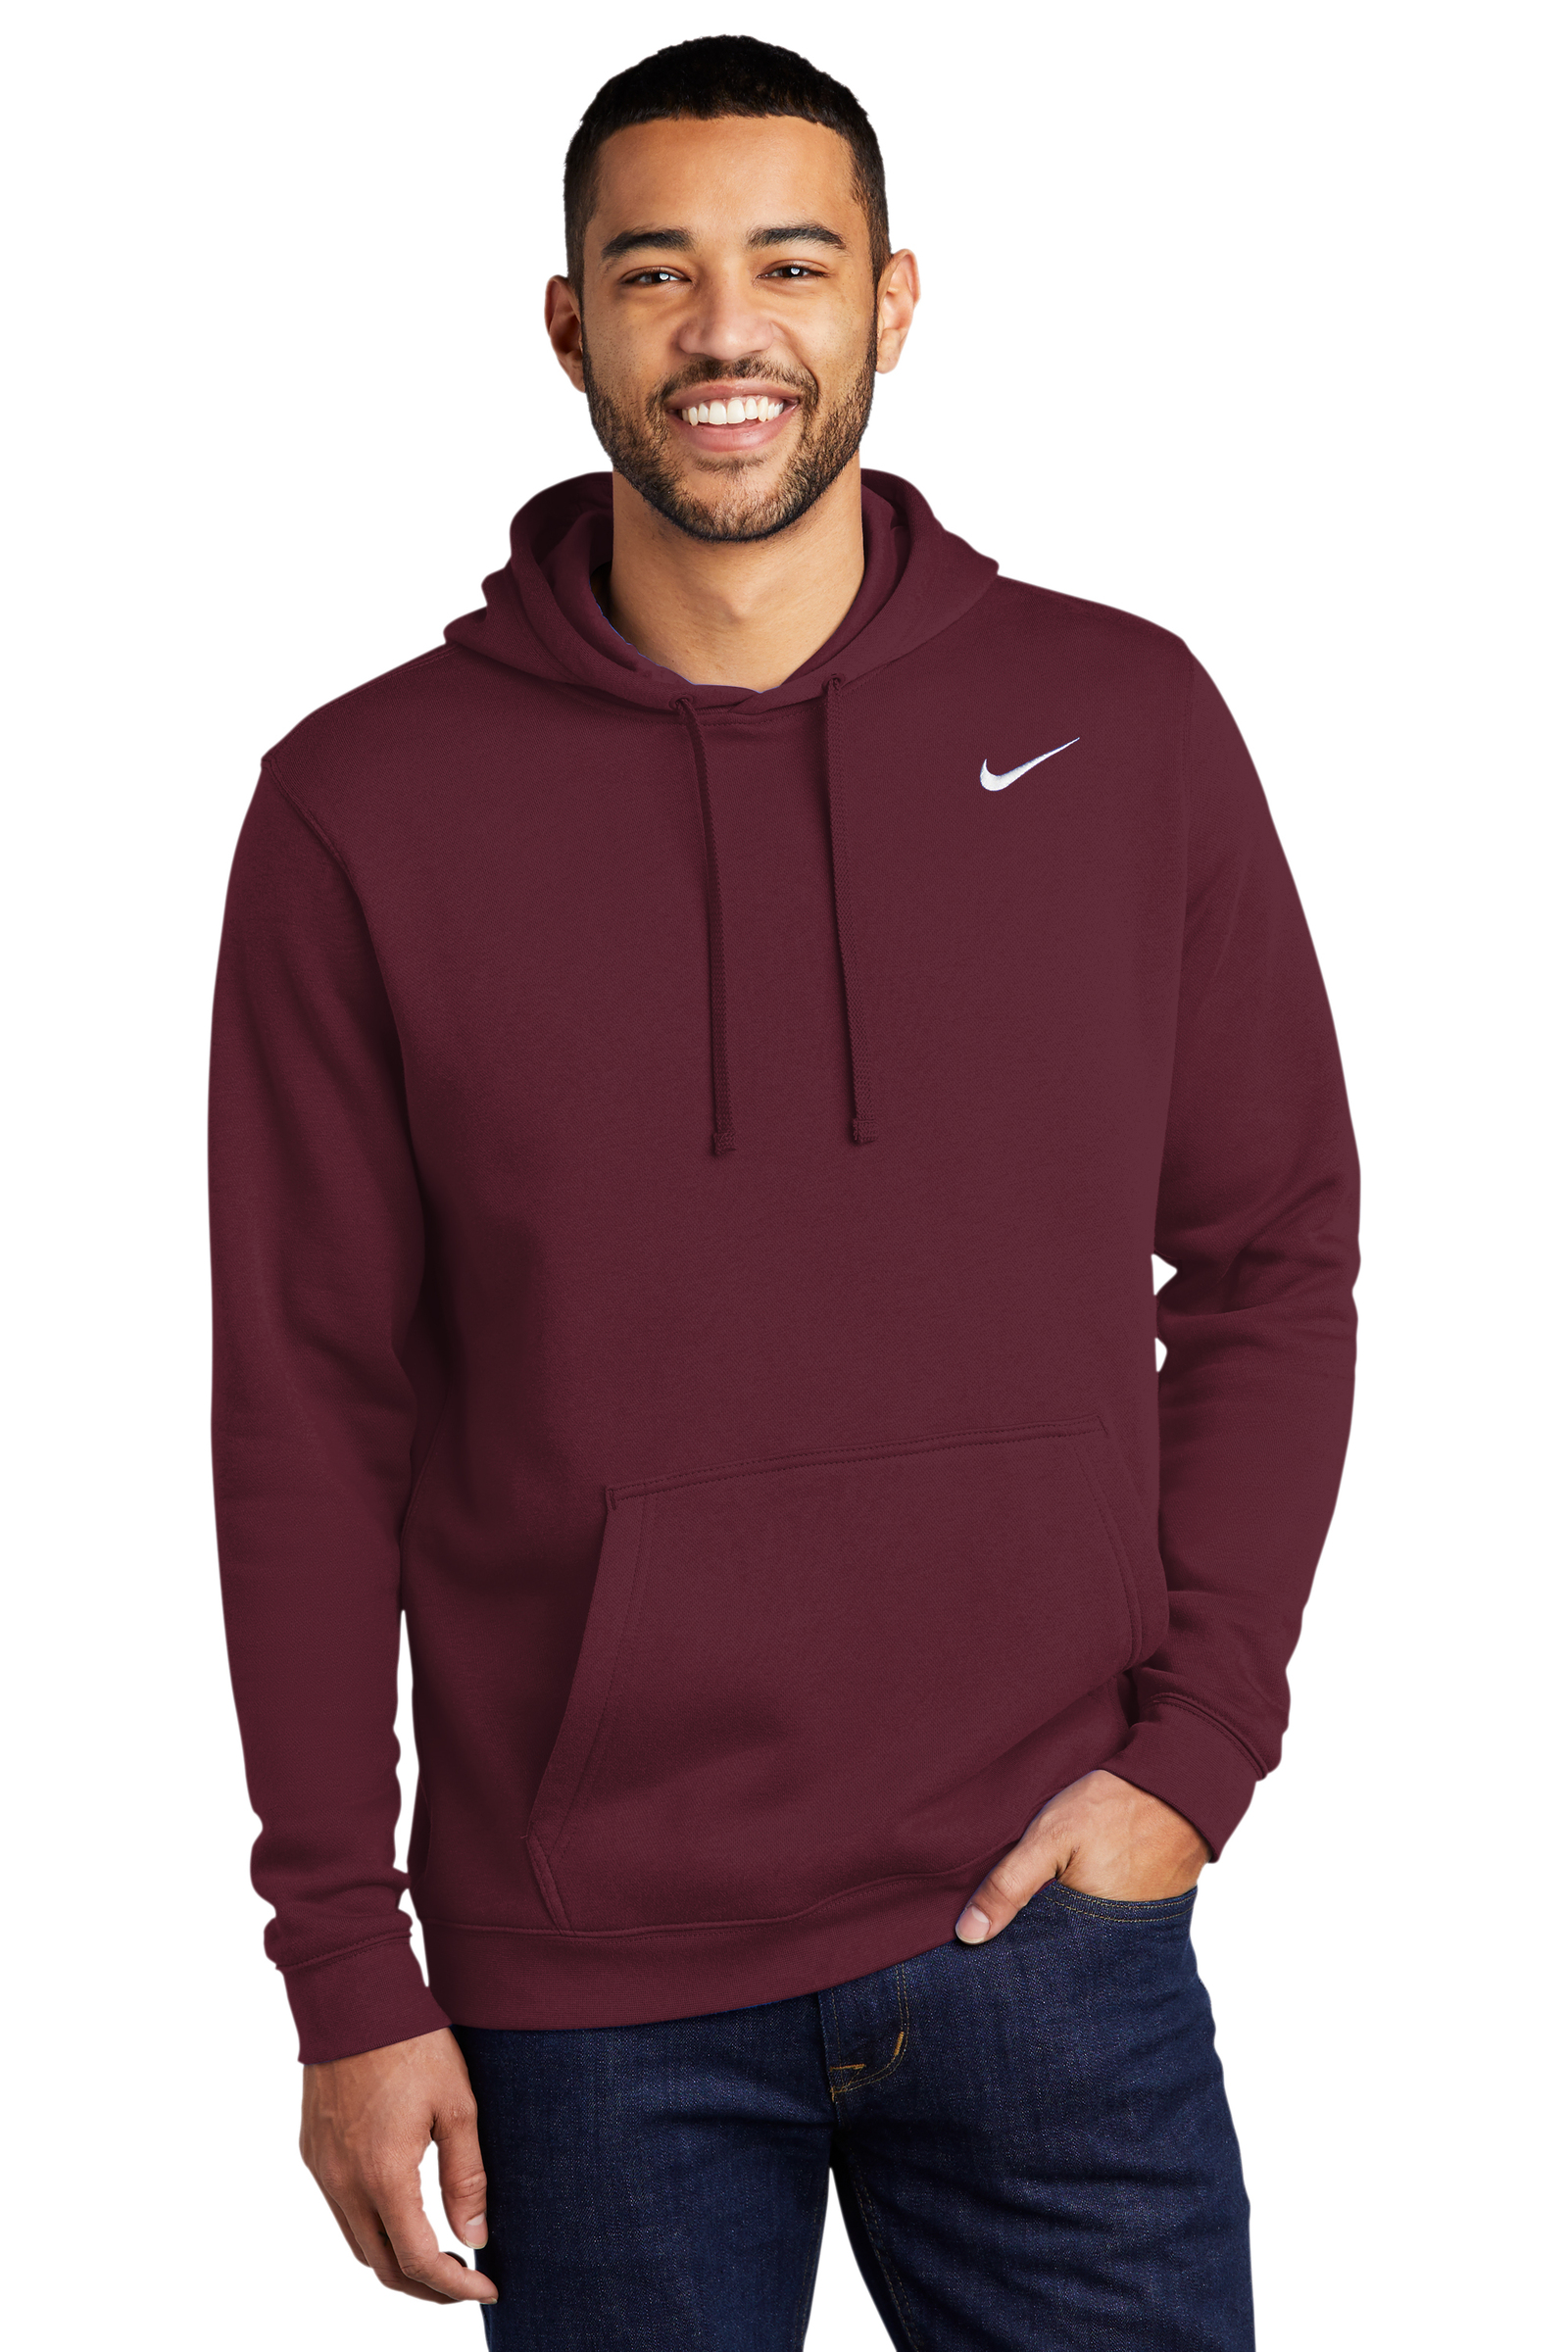 Nike Embroidered Men's Club Fleece Pullover Hoodie